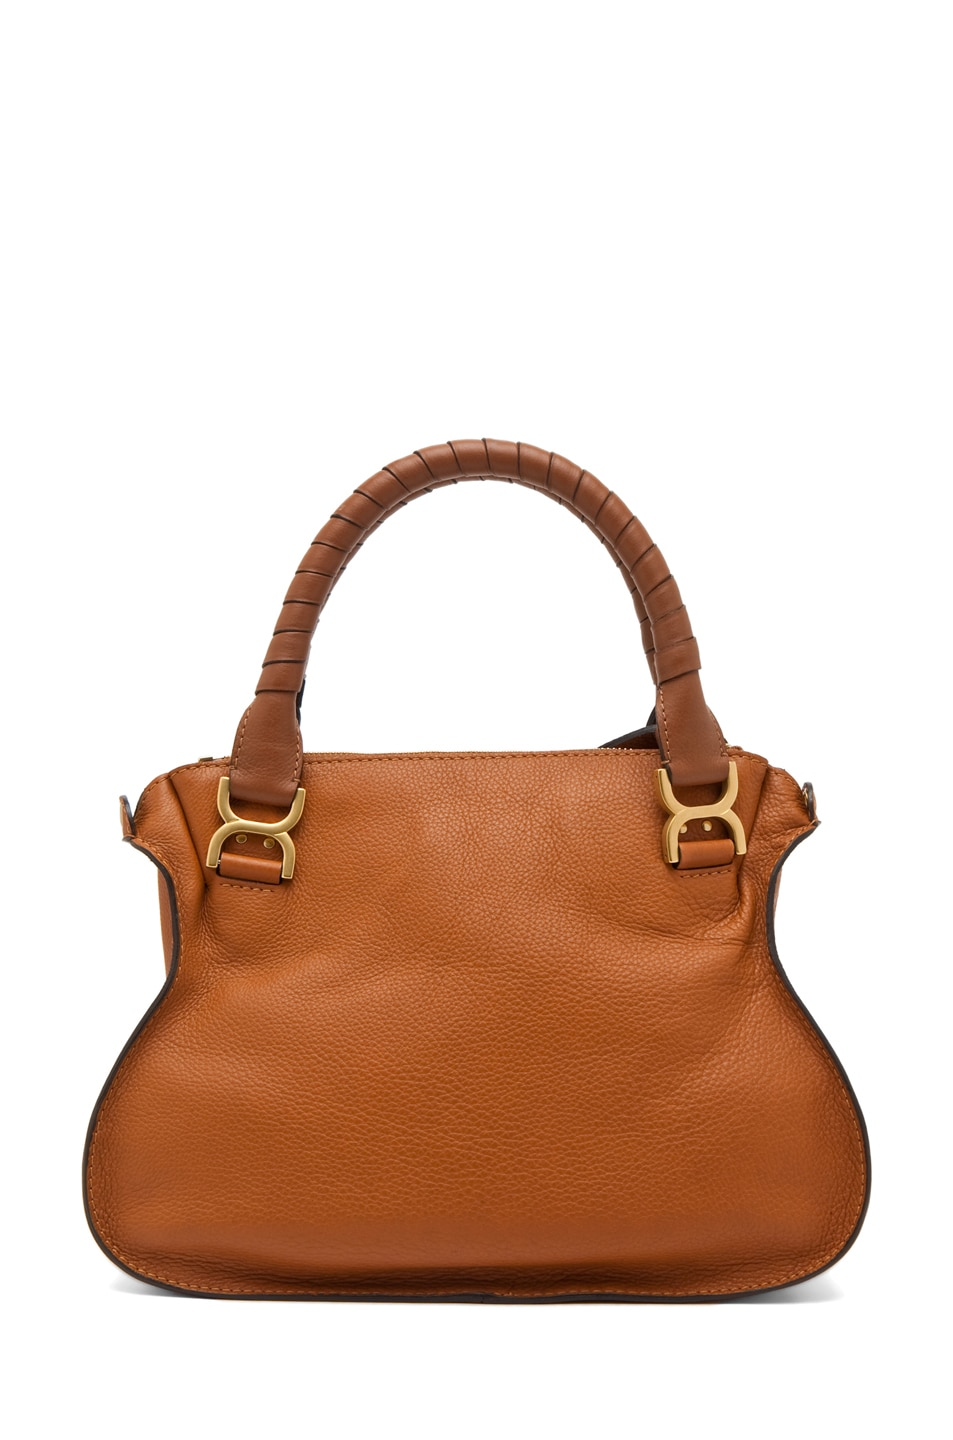 Image 2 of Chloe Small Marcie Shoulder Bag in Tan